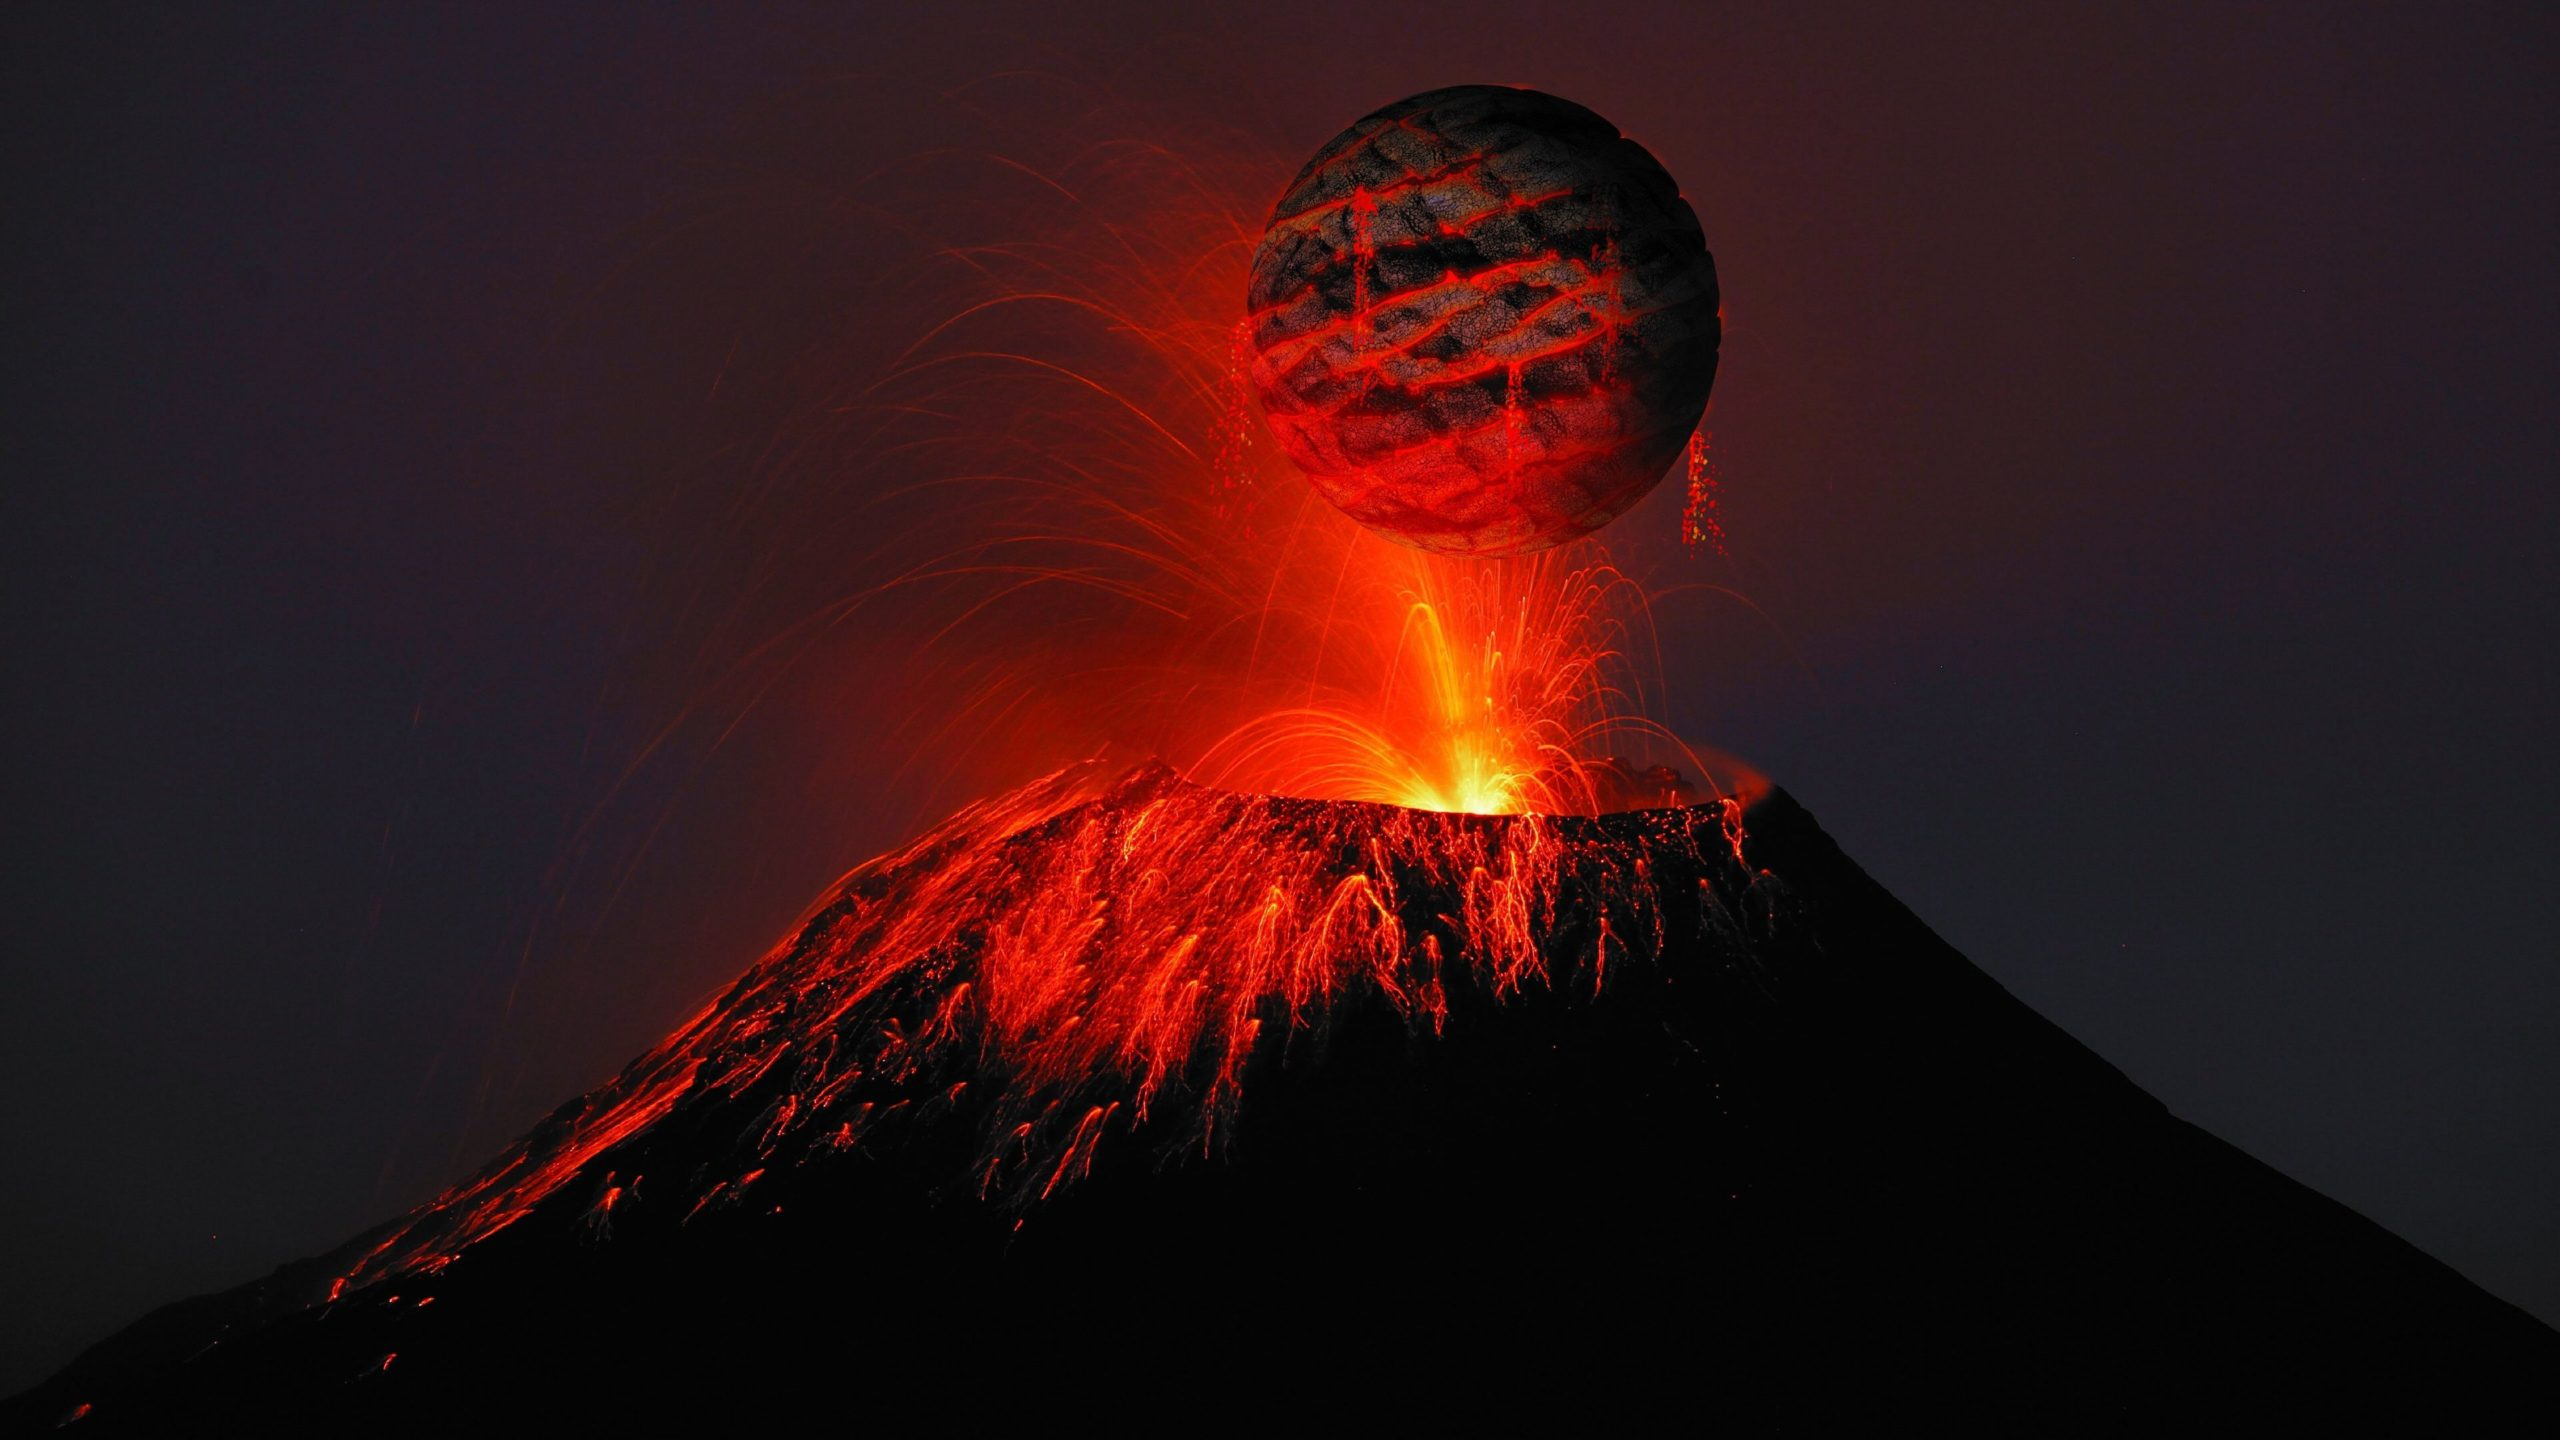 images of lava